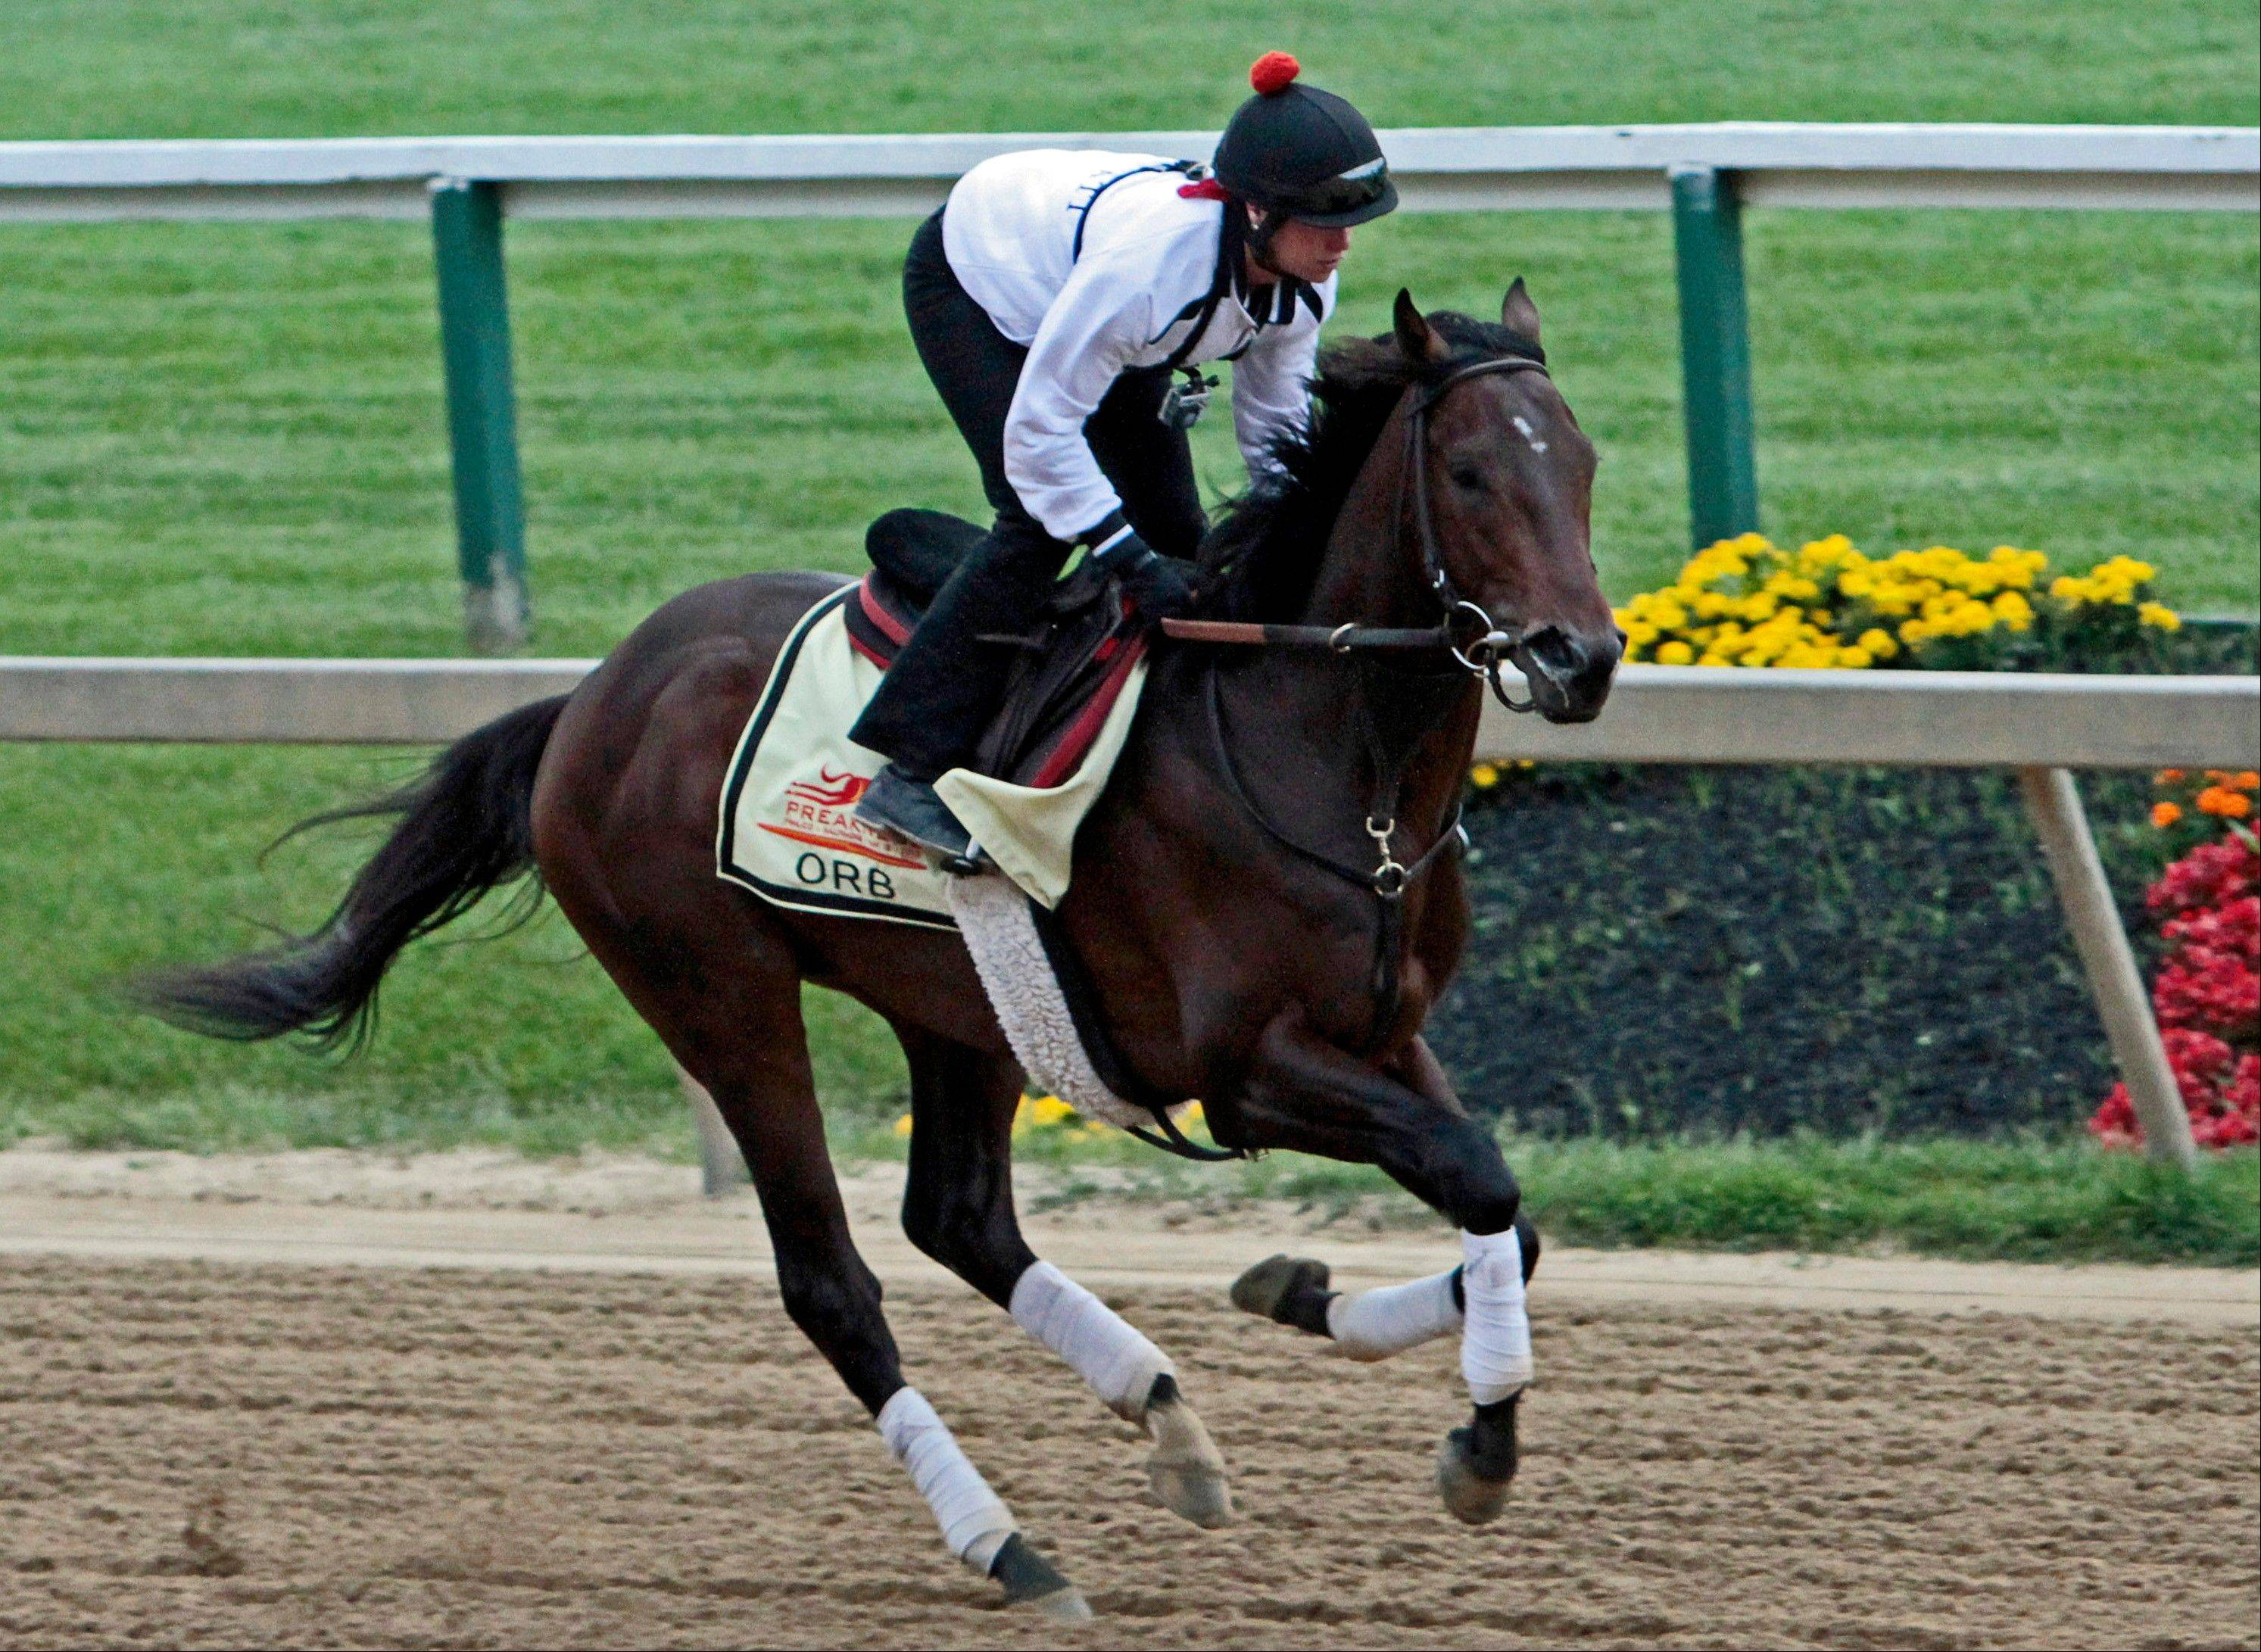 Exercise rider Jenn Patterson gallops Kentucky Derby winner and Preakness Stakes favorite Orb at Pimlico Race Course in Baltimore, Thursday, May 16, 2013.